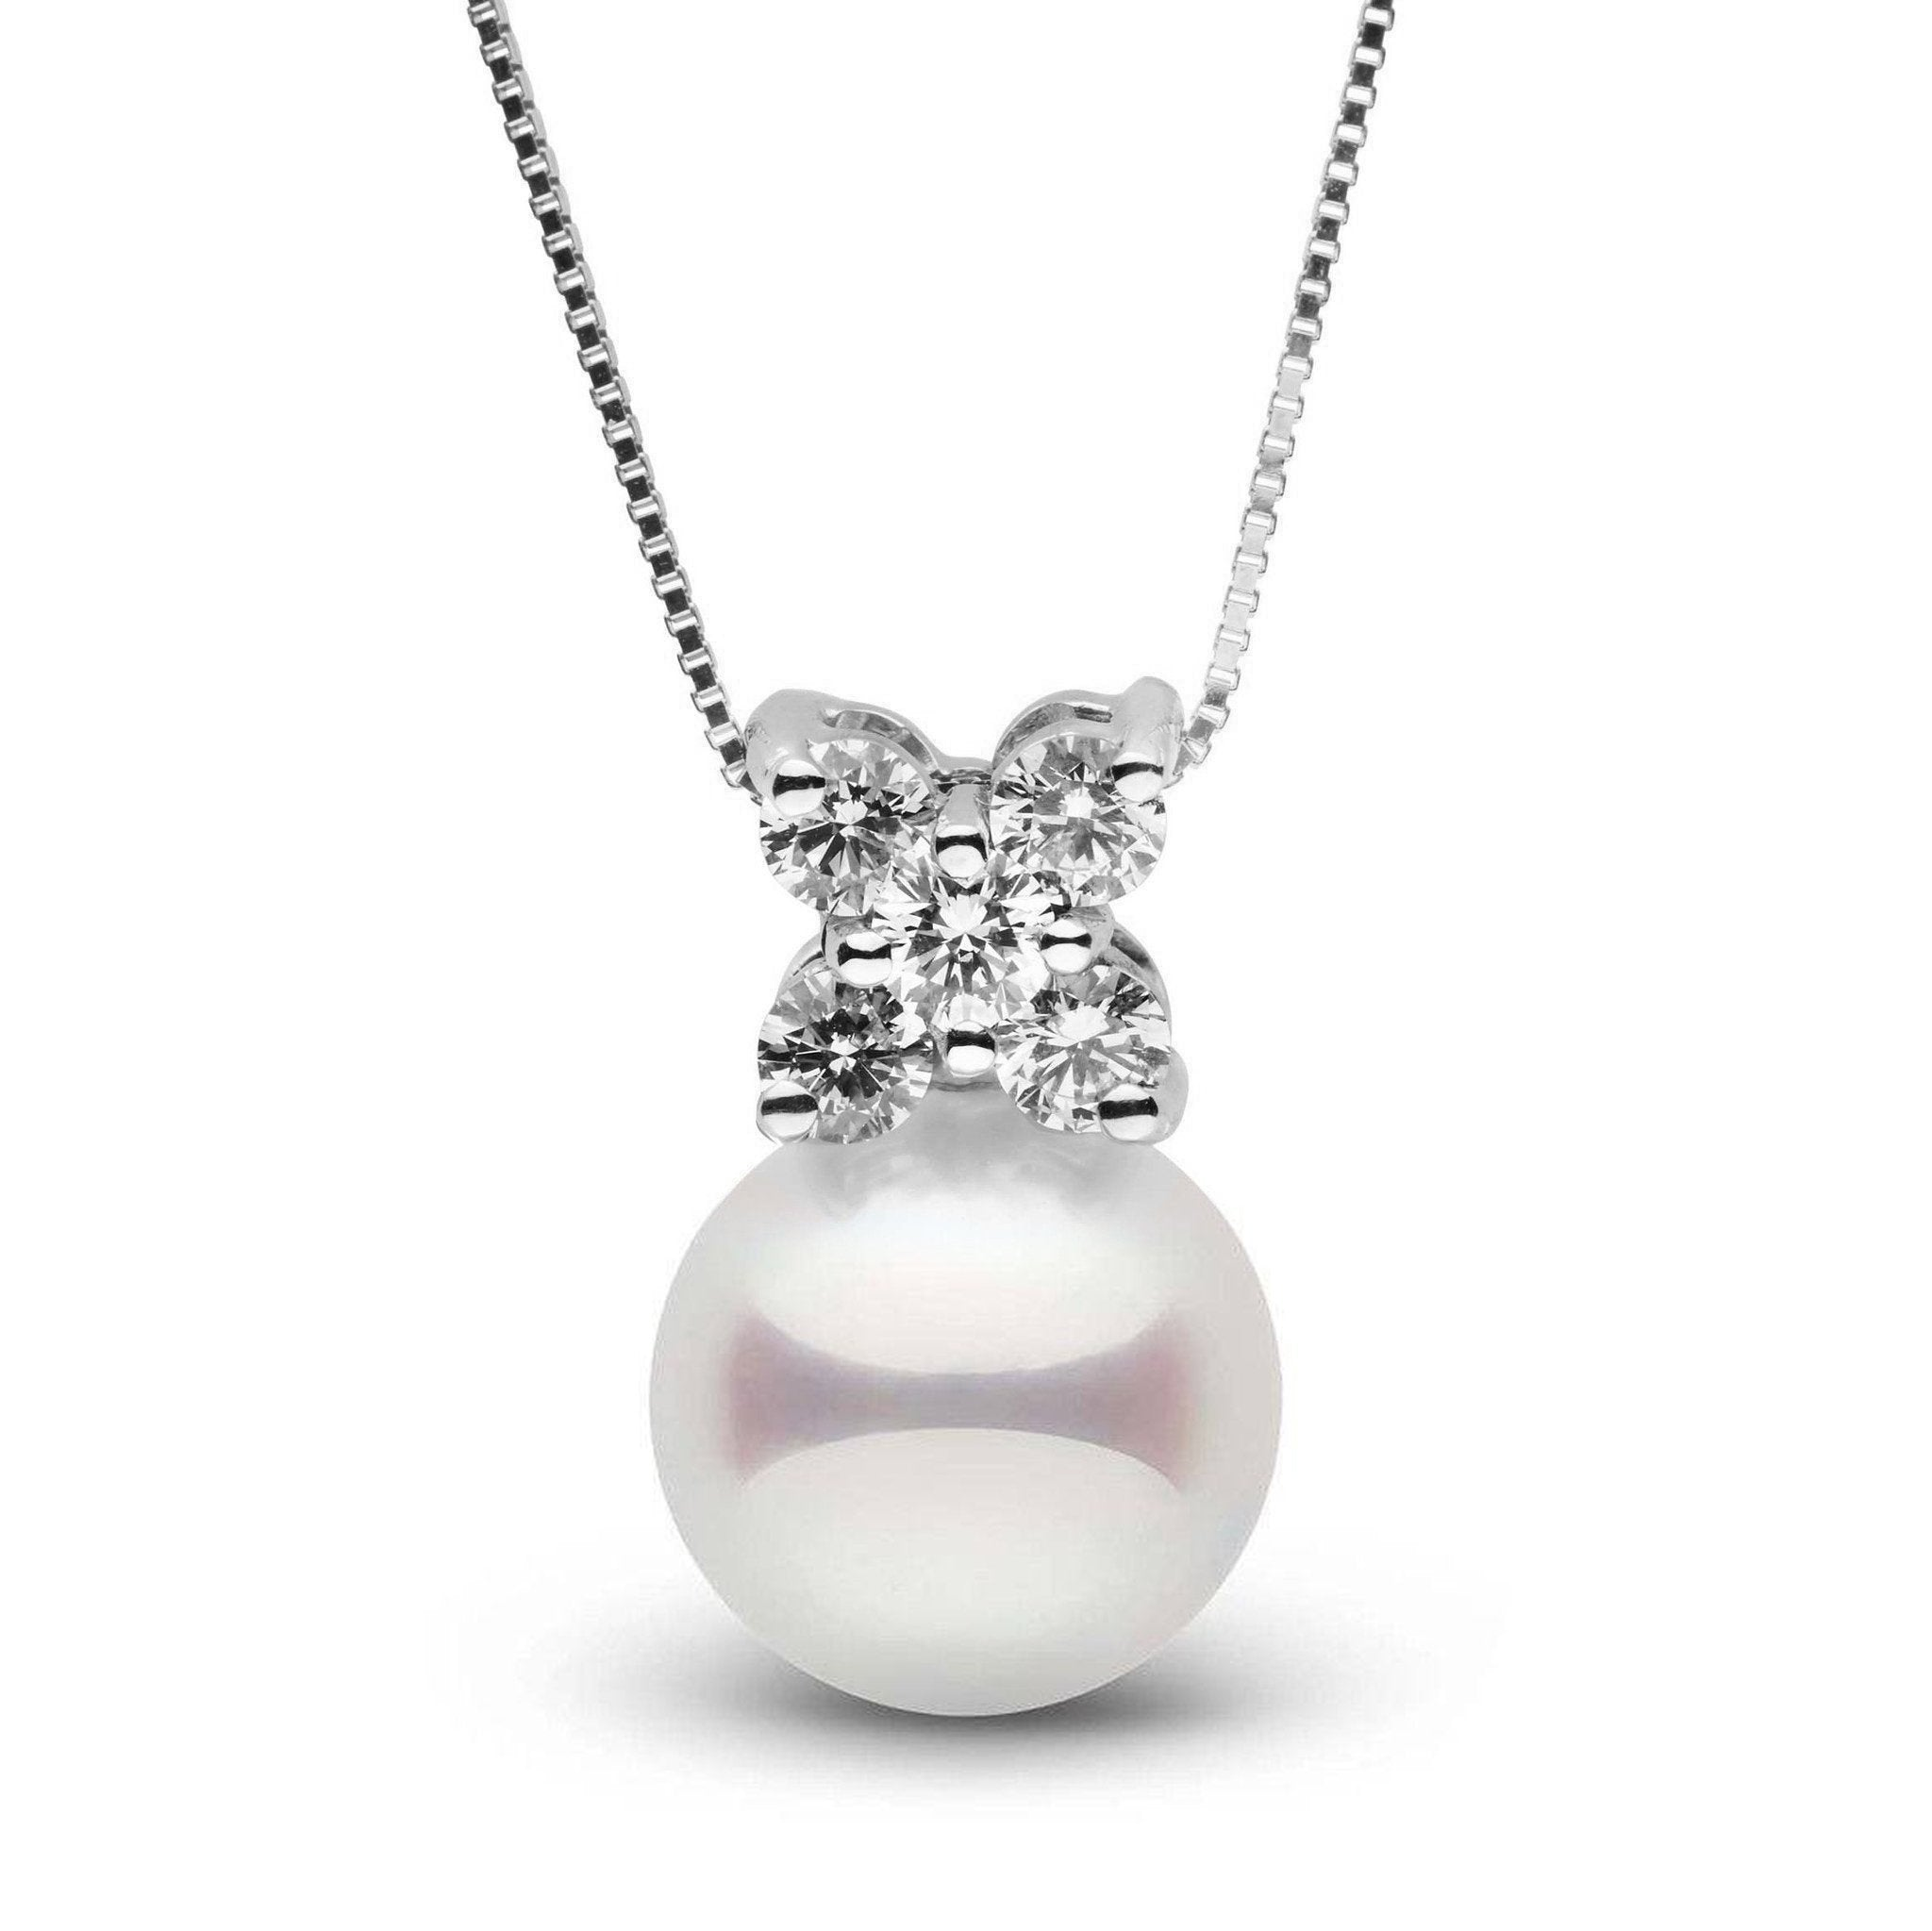 Kiss Collection White 9.0-9.5 mm Akoya Pearl and Diamond Pendant